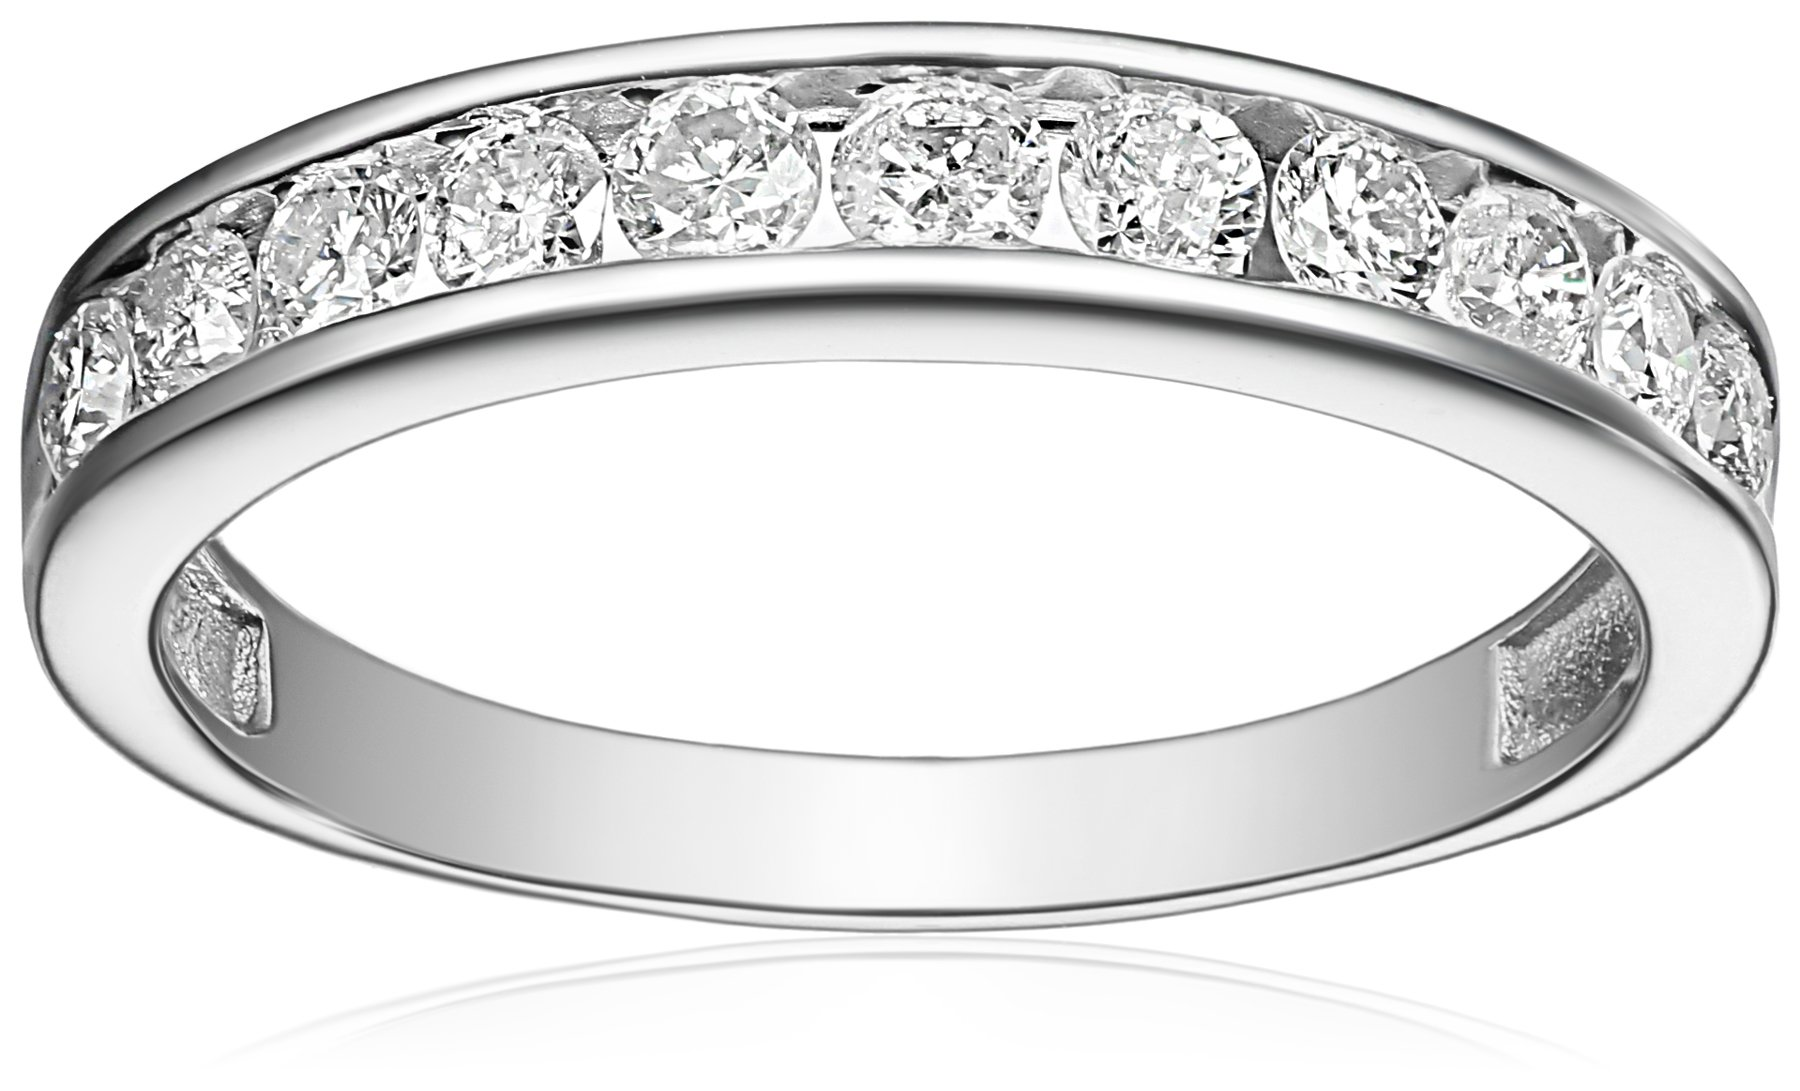 14k White Gold Round Diamond Anniversary Band (1/2 cttw, I-J Color, I2-I3 Clarity), Size 7